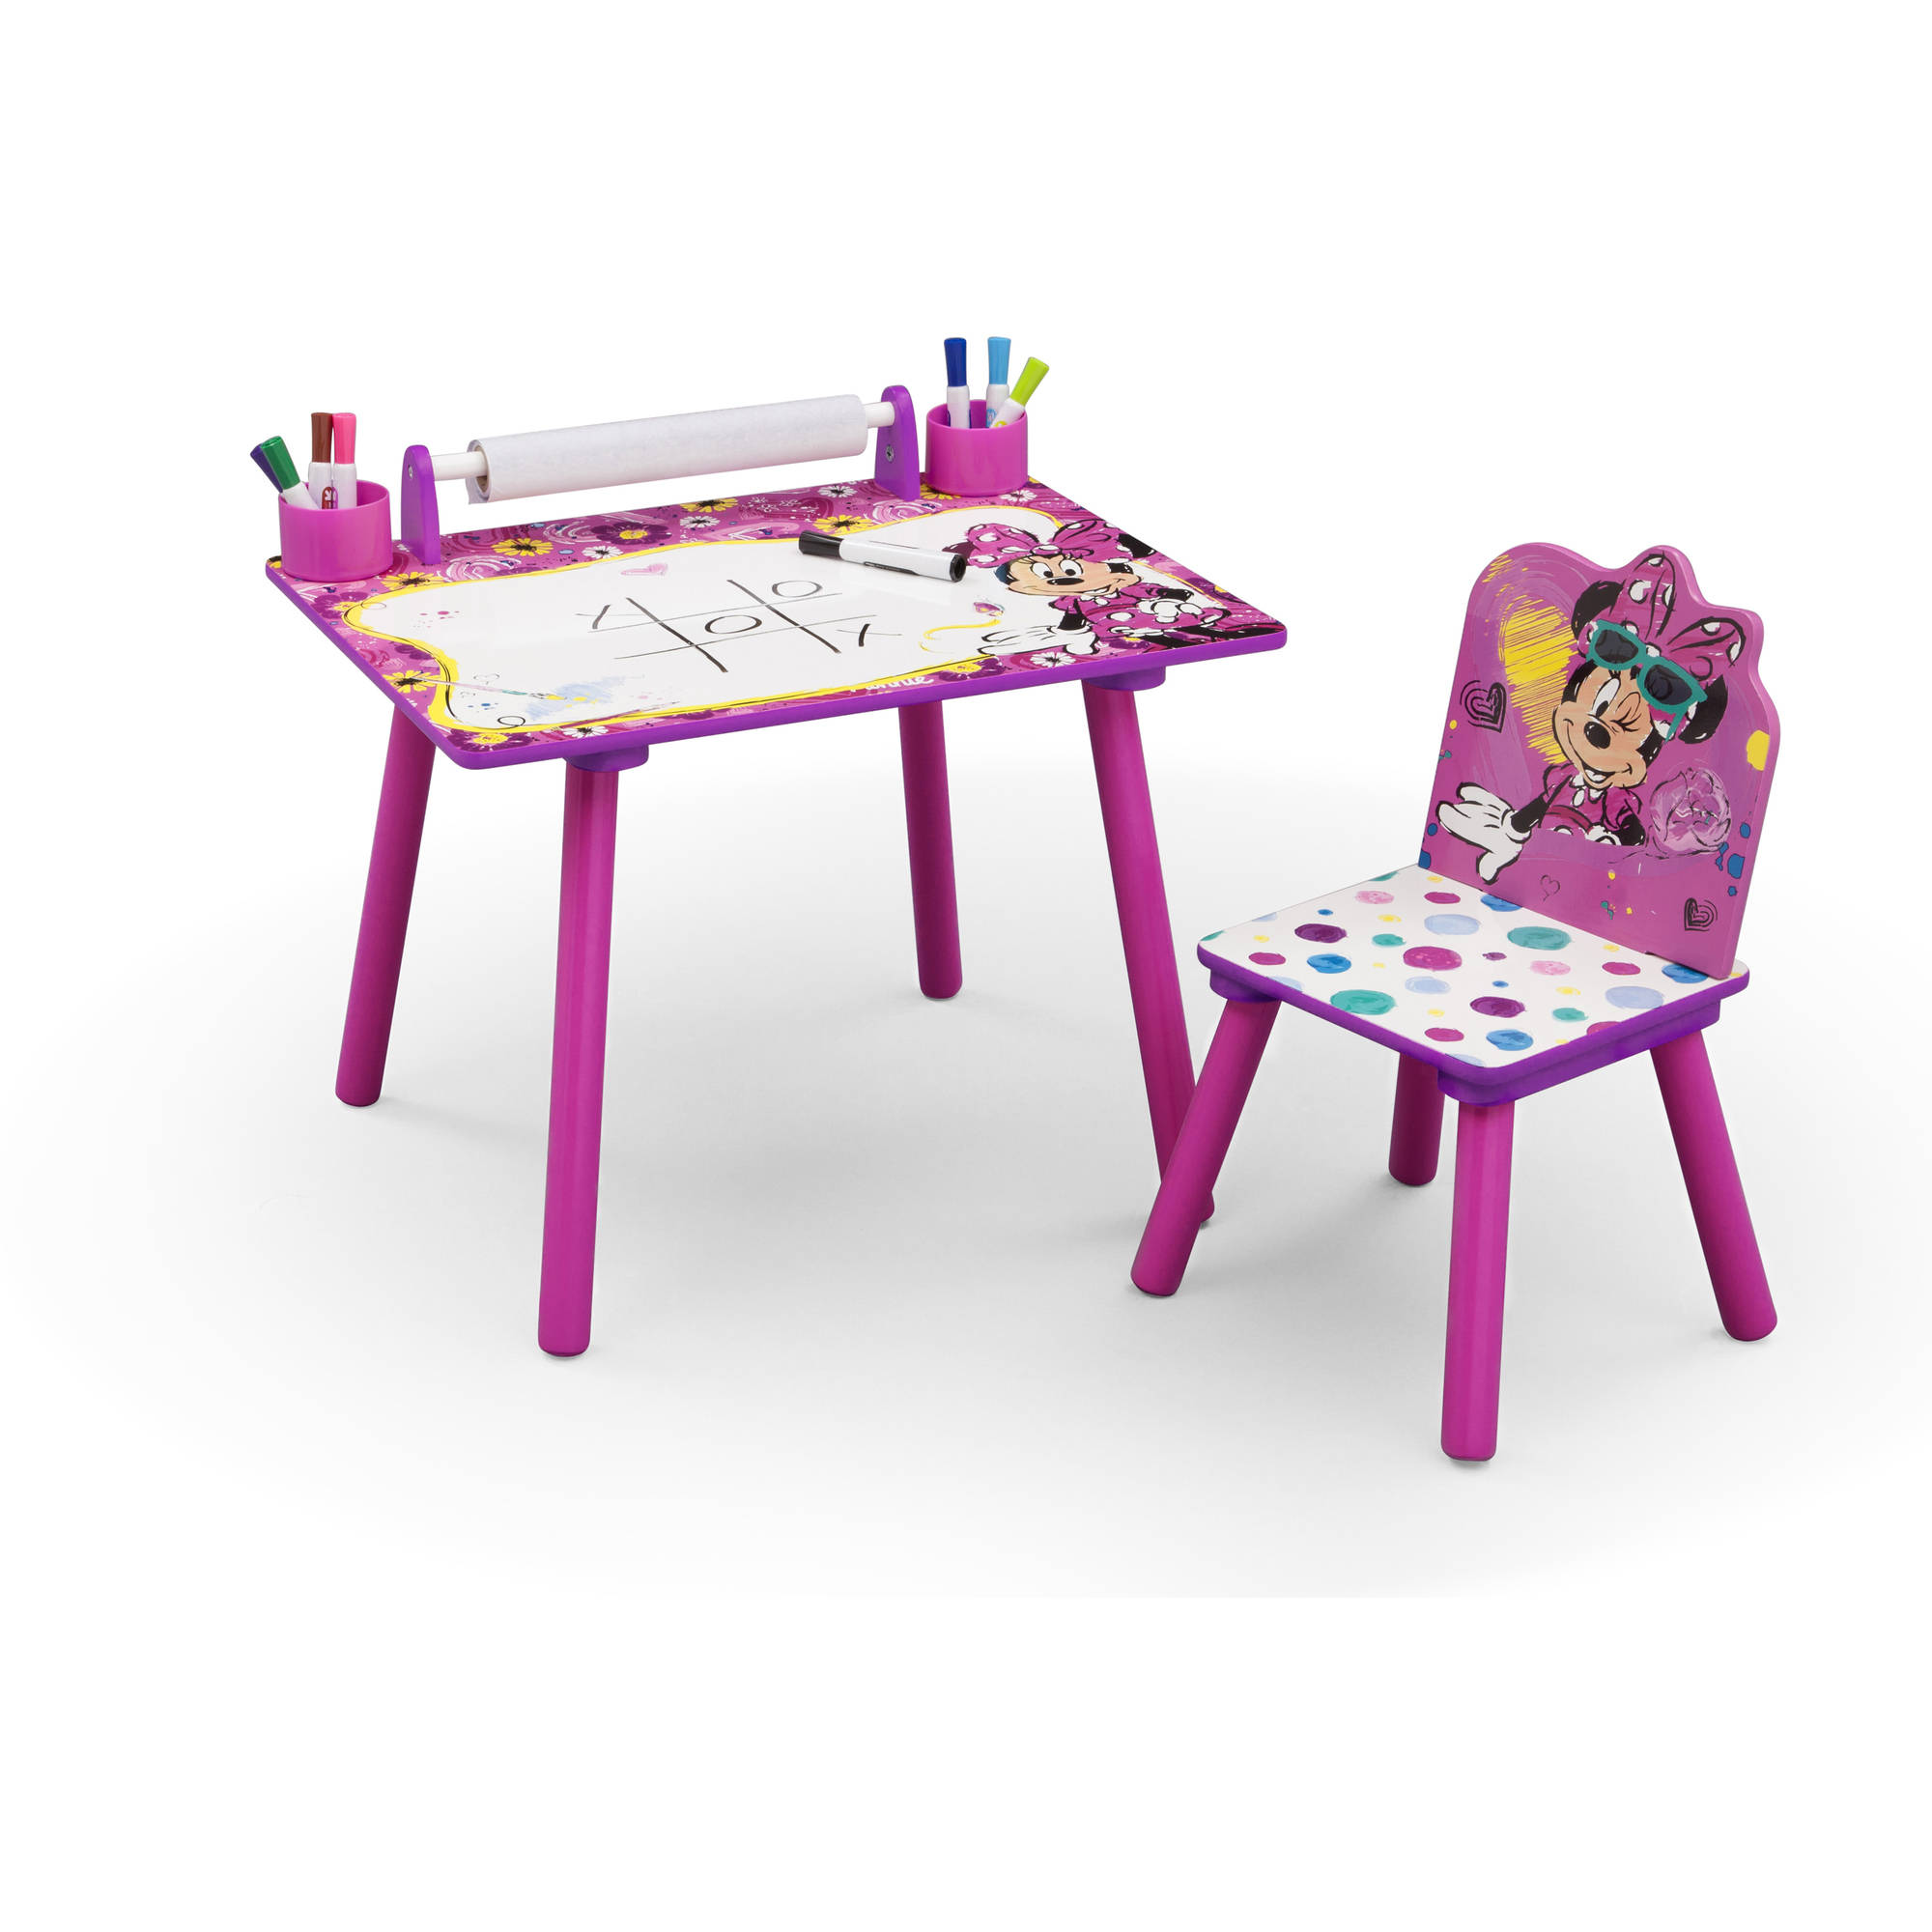 Kids Desks & Chairs Walmart